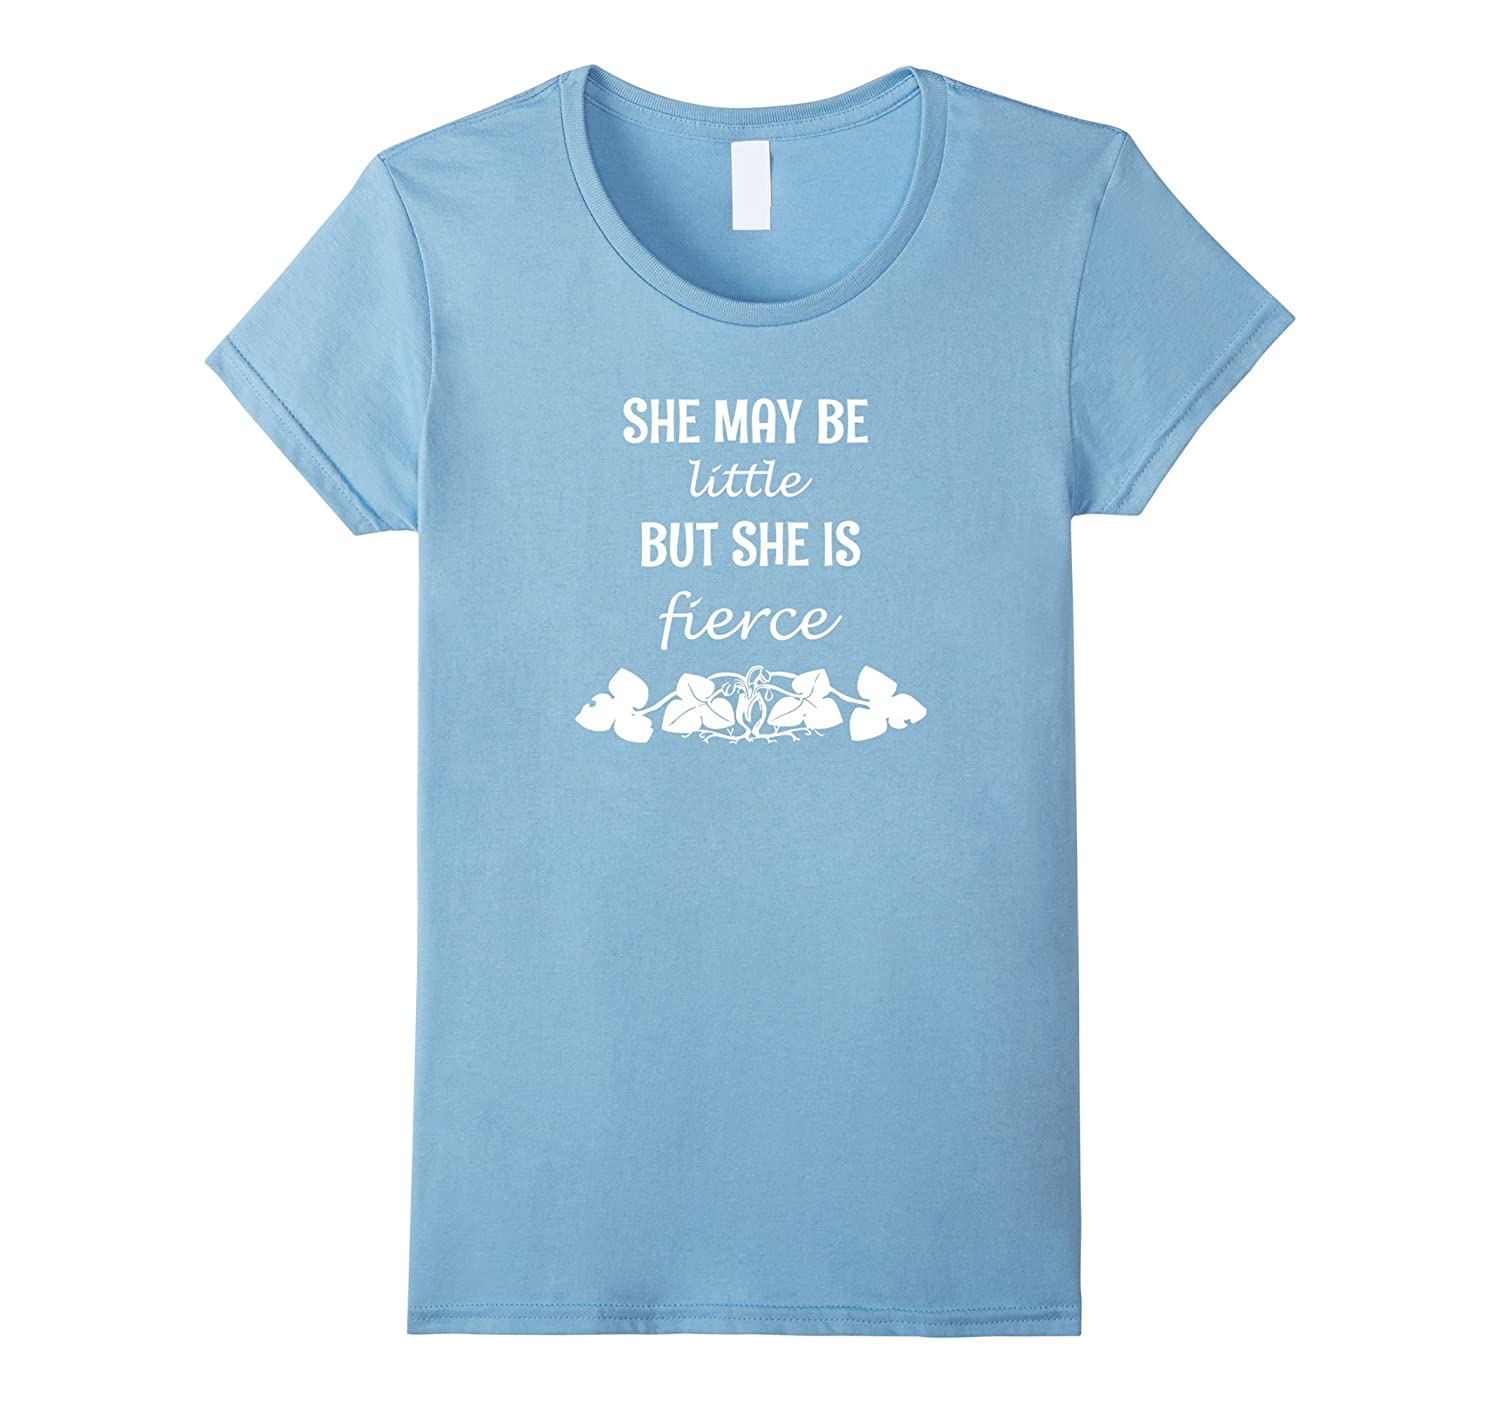 She May Be Little But She Is Fierce Shakespeare Quote Shirt 4lvs